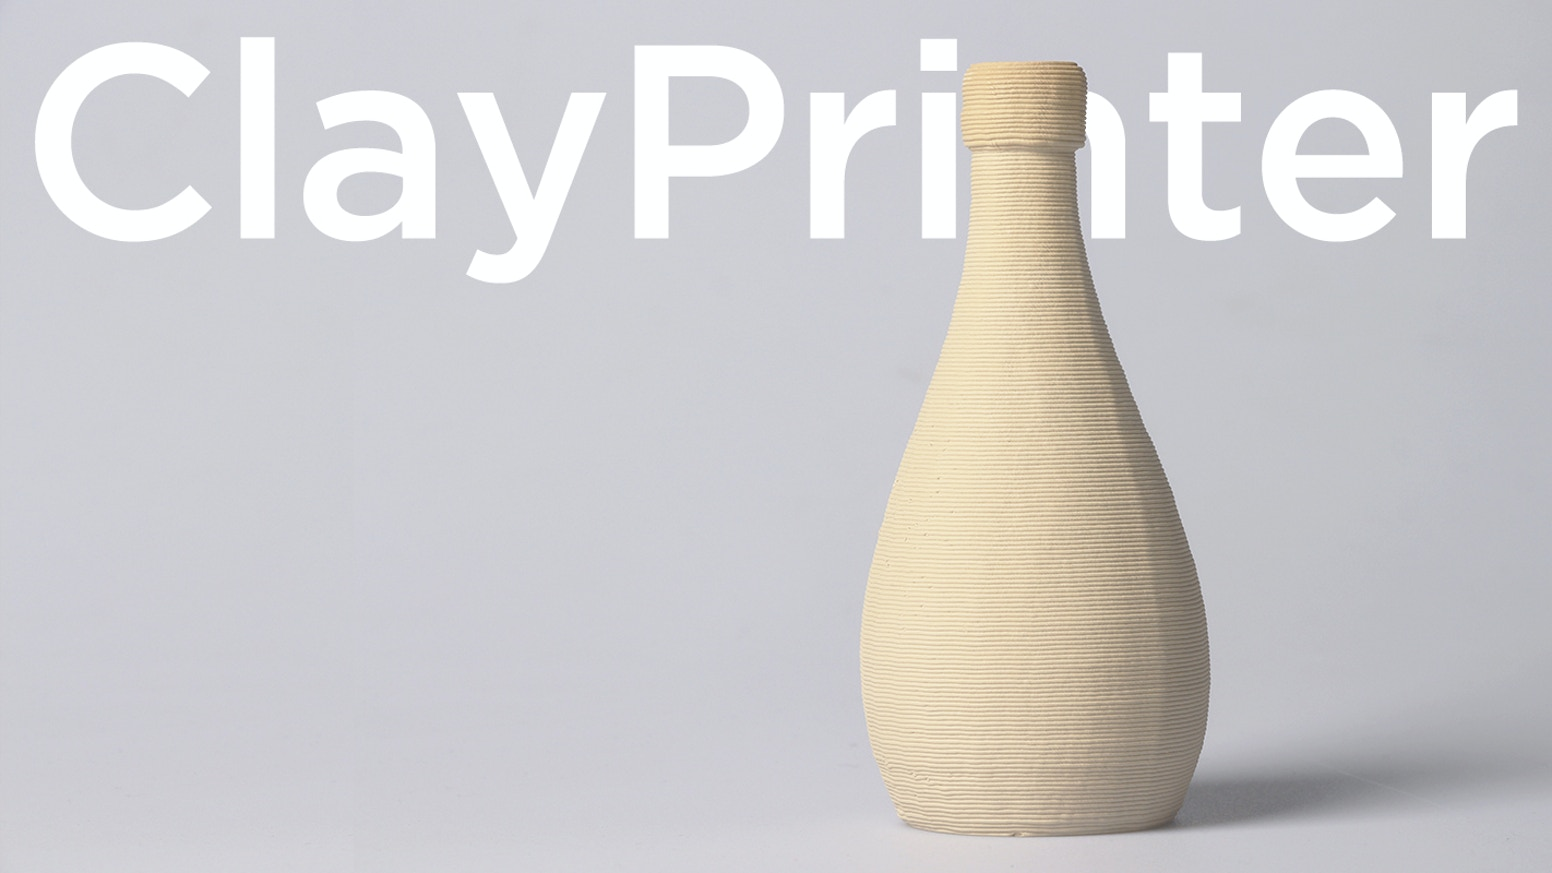 ClayXYZ combines 3D Printing with Reusable Natural Material to create intricately textured ceramic artwork. Affordable and easy to use.